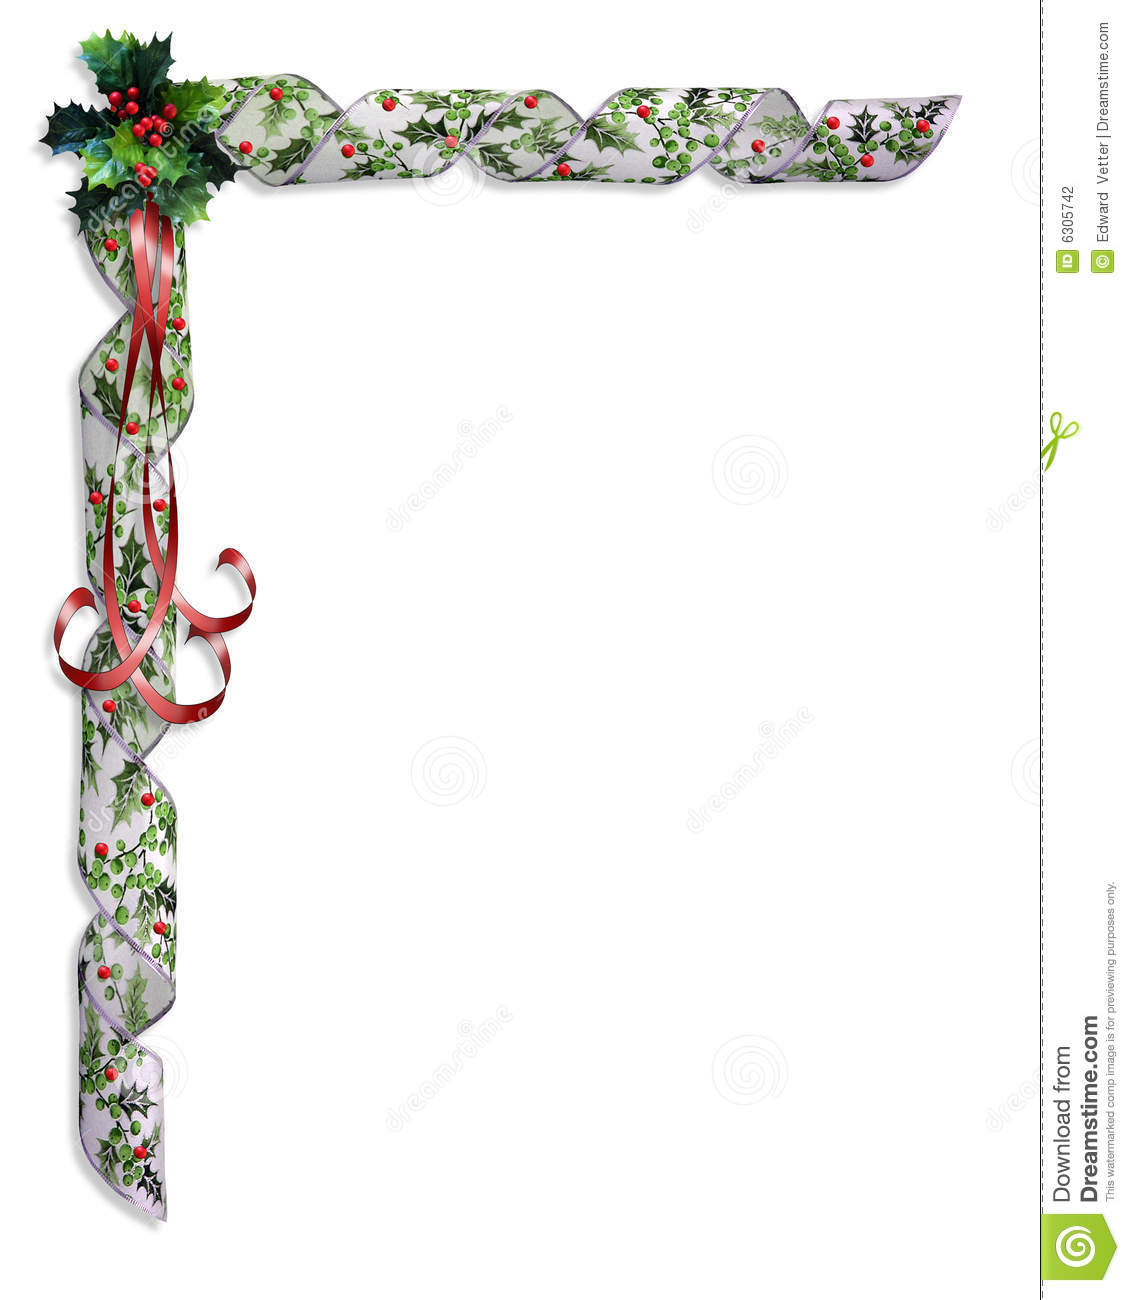 Christmas holly and ribbons border stock illustration